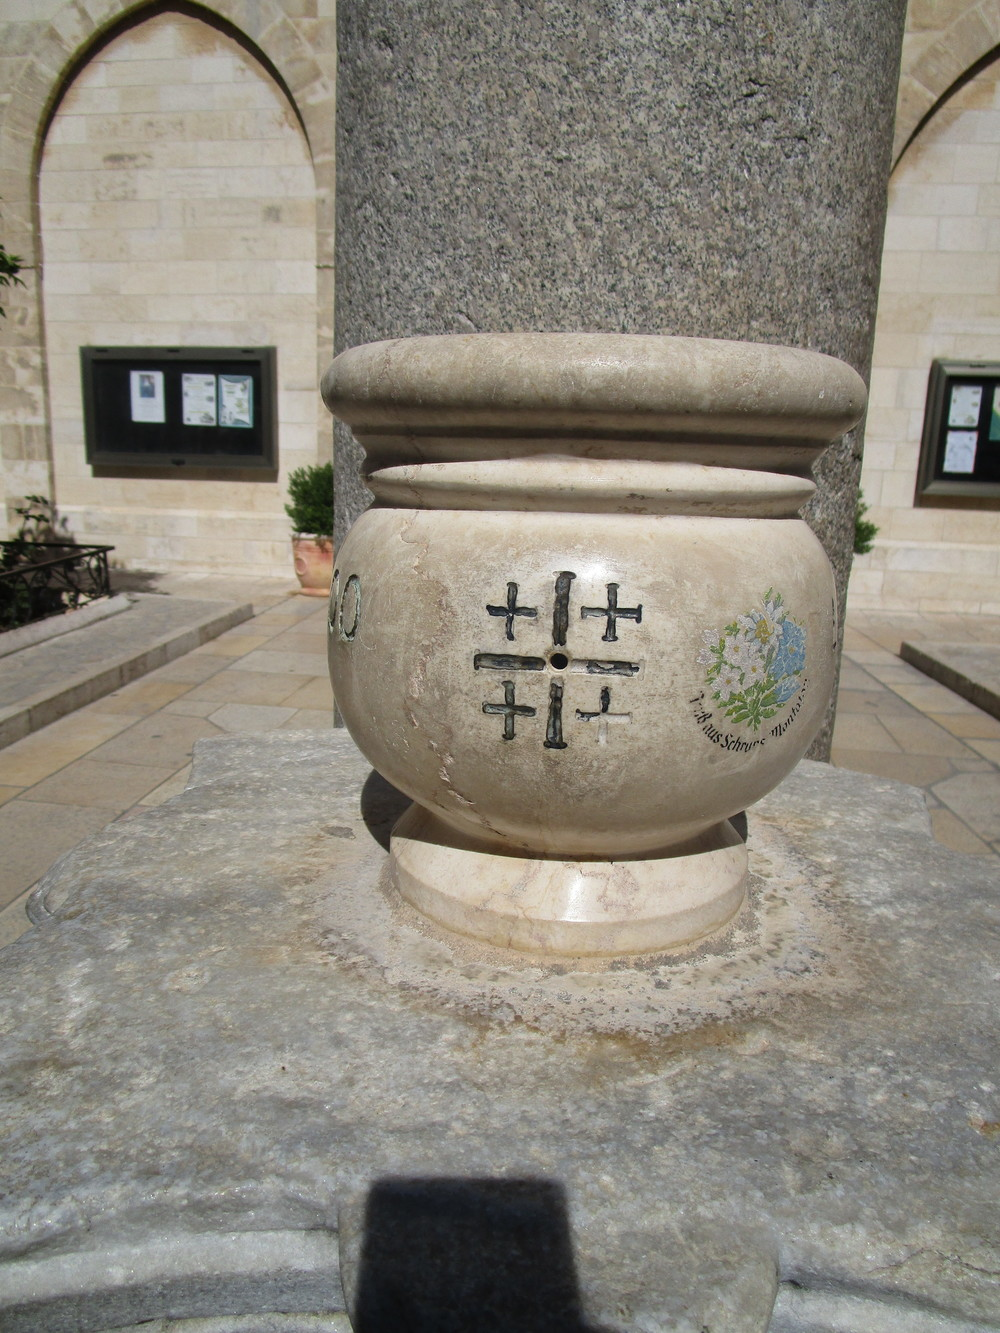 You'll notice this emblem often in these images. I've grown to love it. It's called The Jerusalem Cross. I will write about it in upcoming entries.